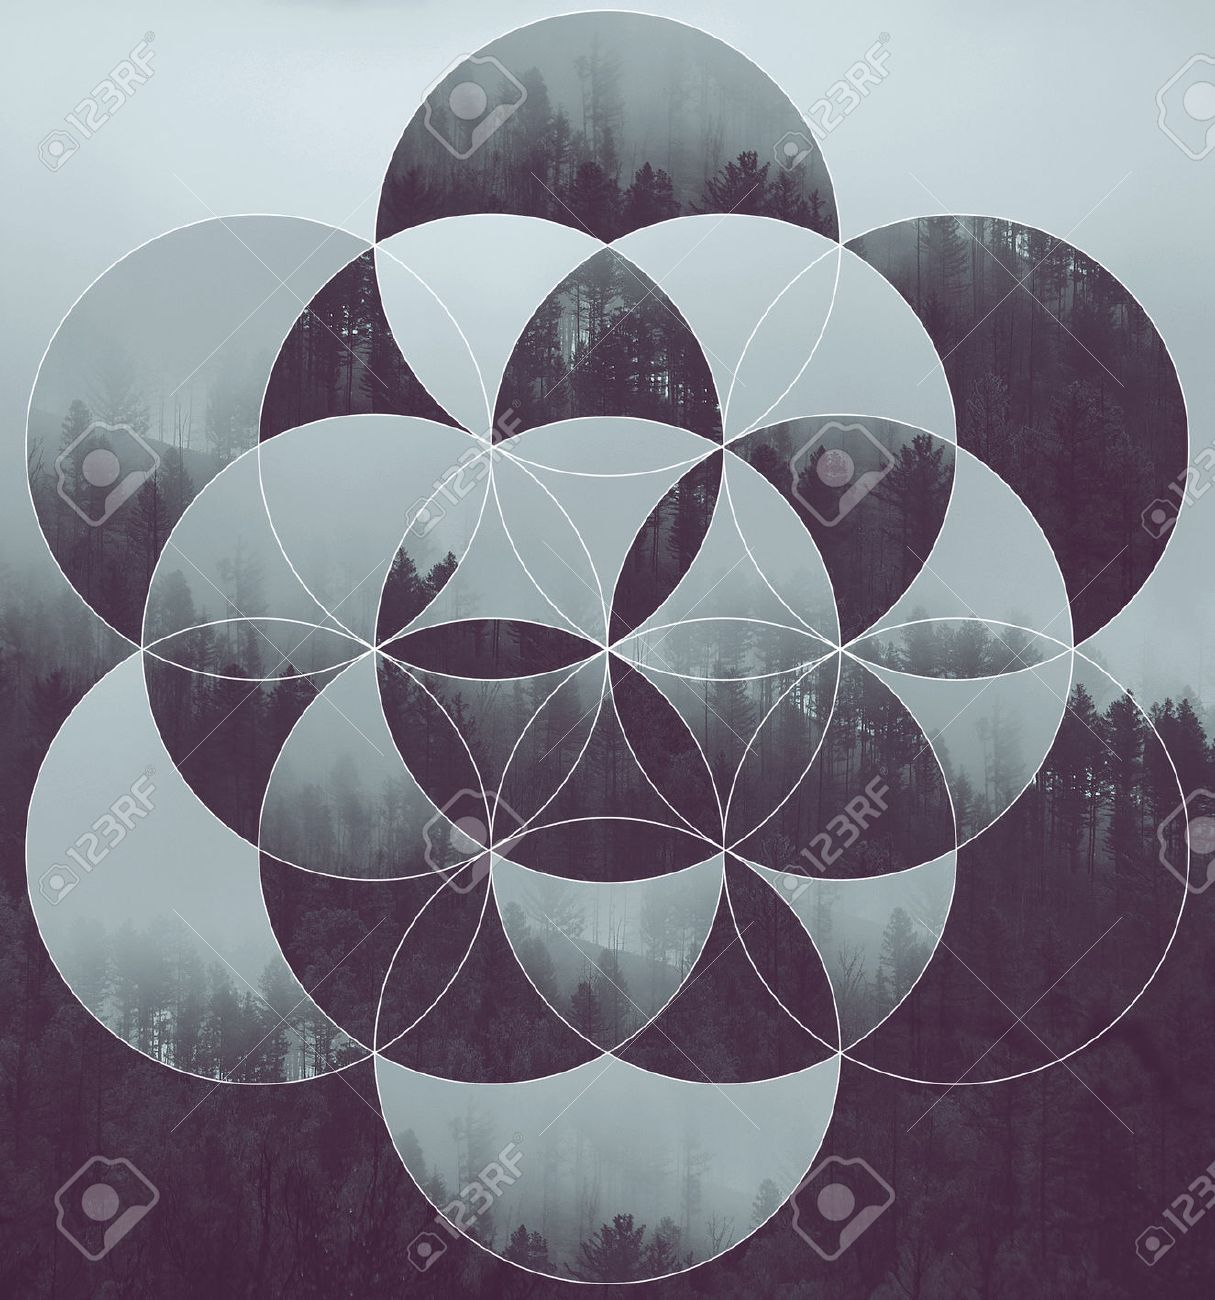 Abstract background with the image of the forest and the flower of life. Harmony, spirituality, unity of nature. Collage, mosaic. - 51110810